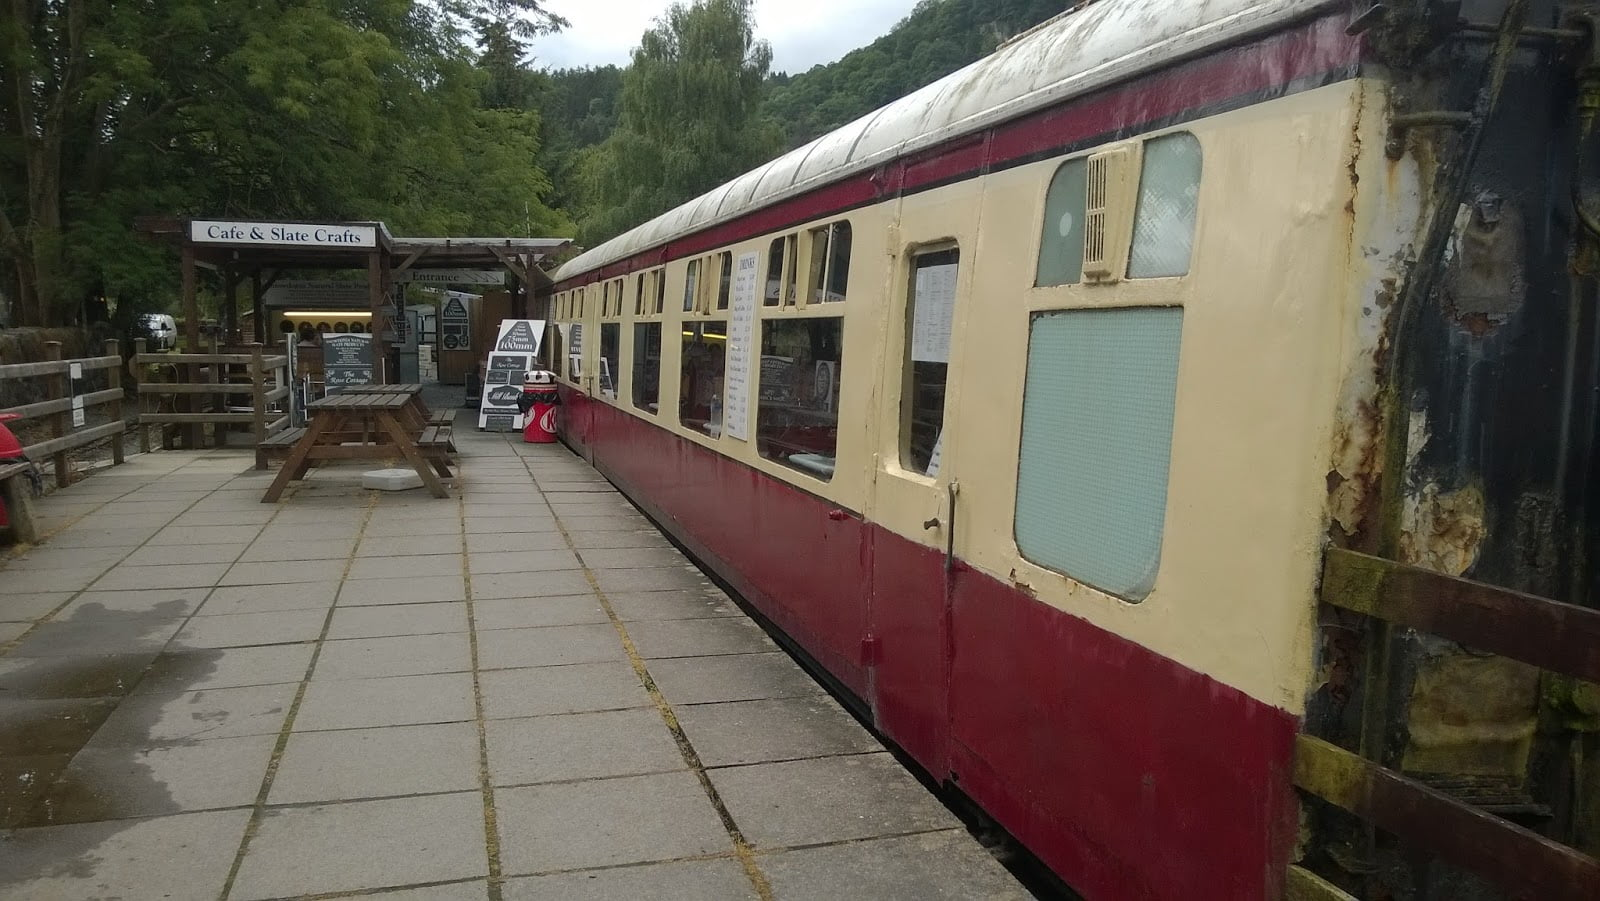 Buffet Coach Cafe at Betws-y-coed